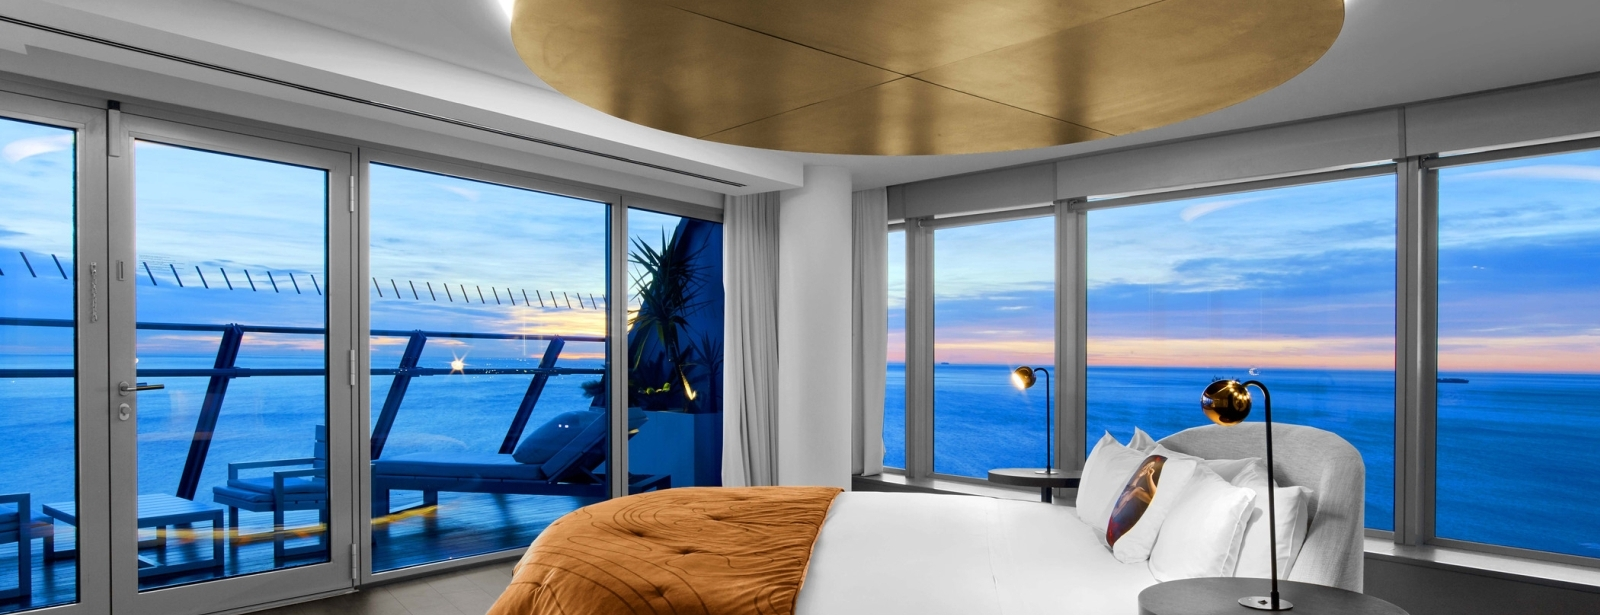 Luxury WOW Suite Bedroom at W Barcelona